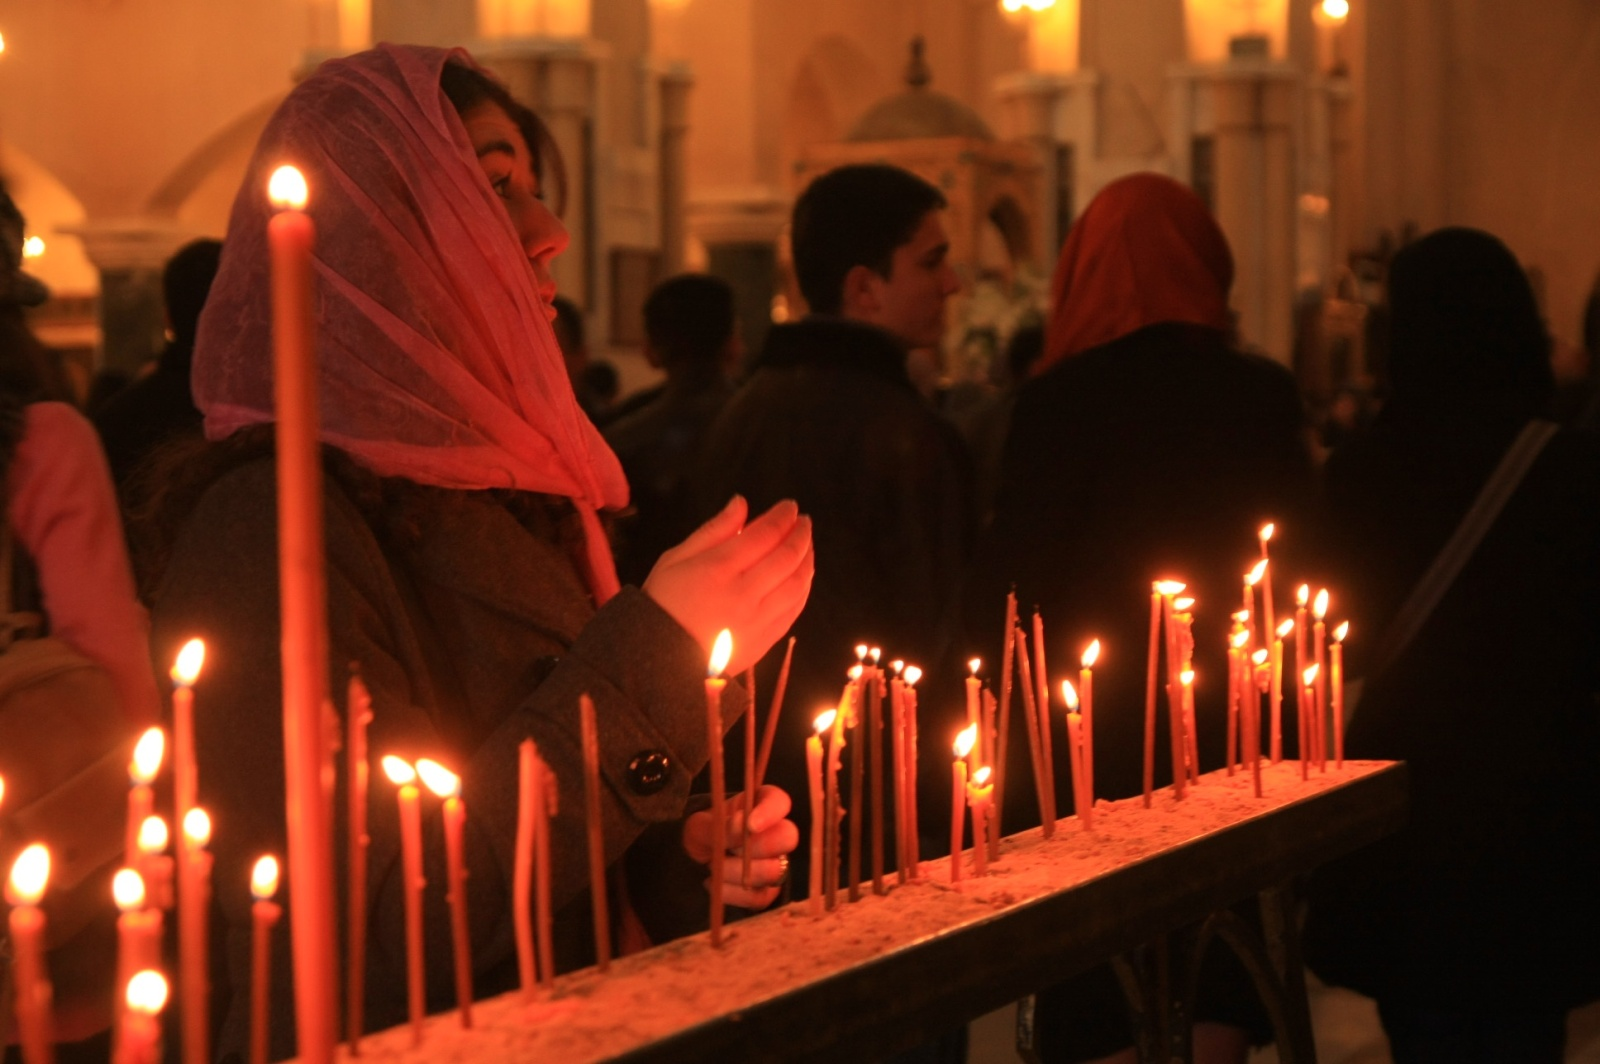 Georgians are mega religious - the old and the young, everyone